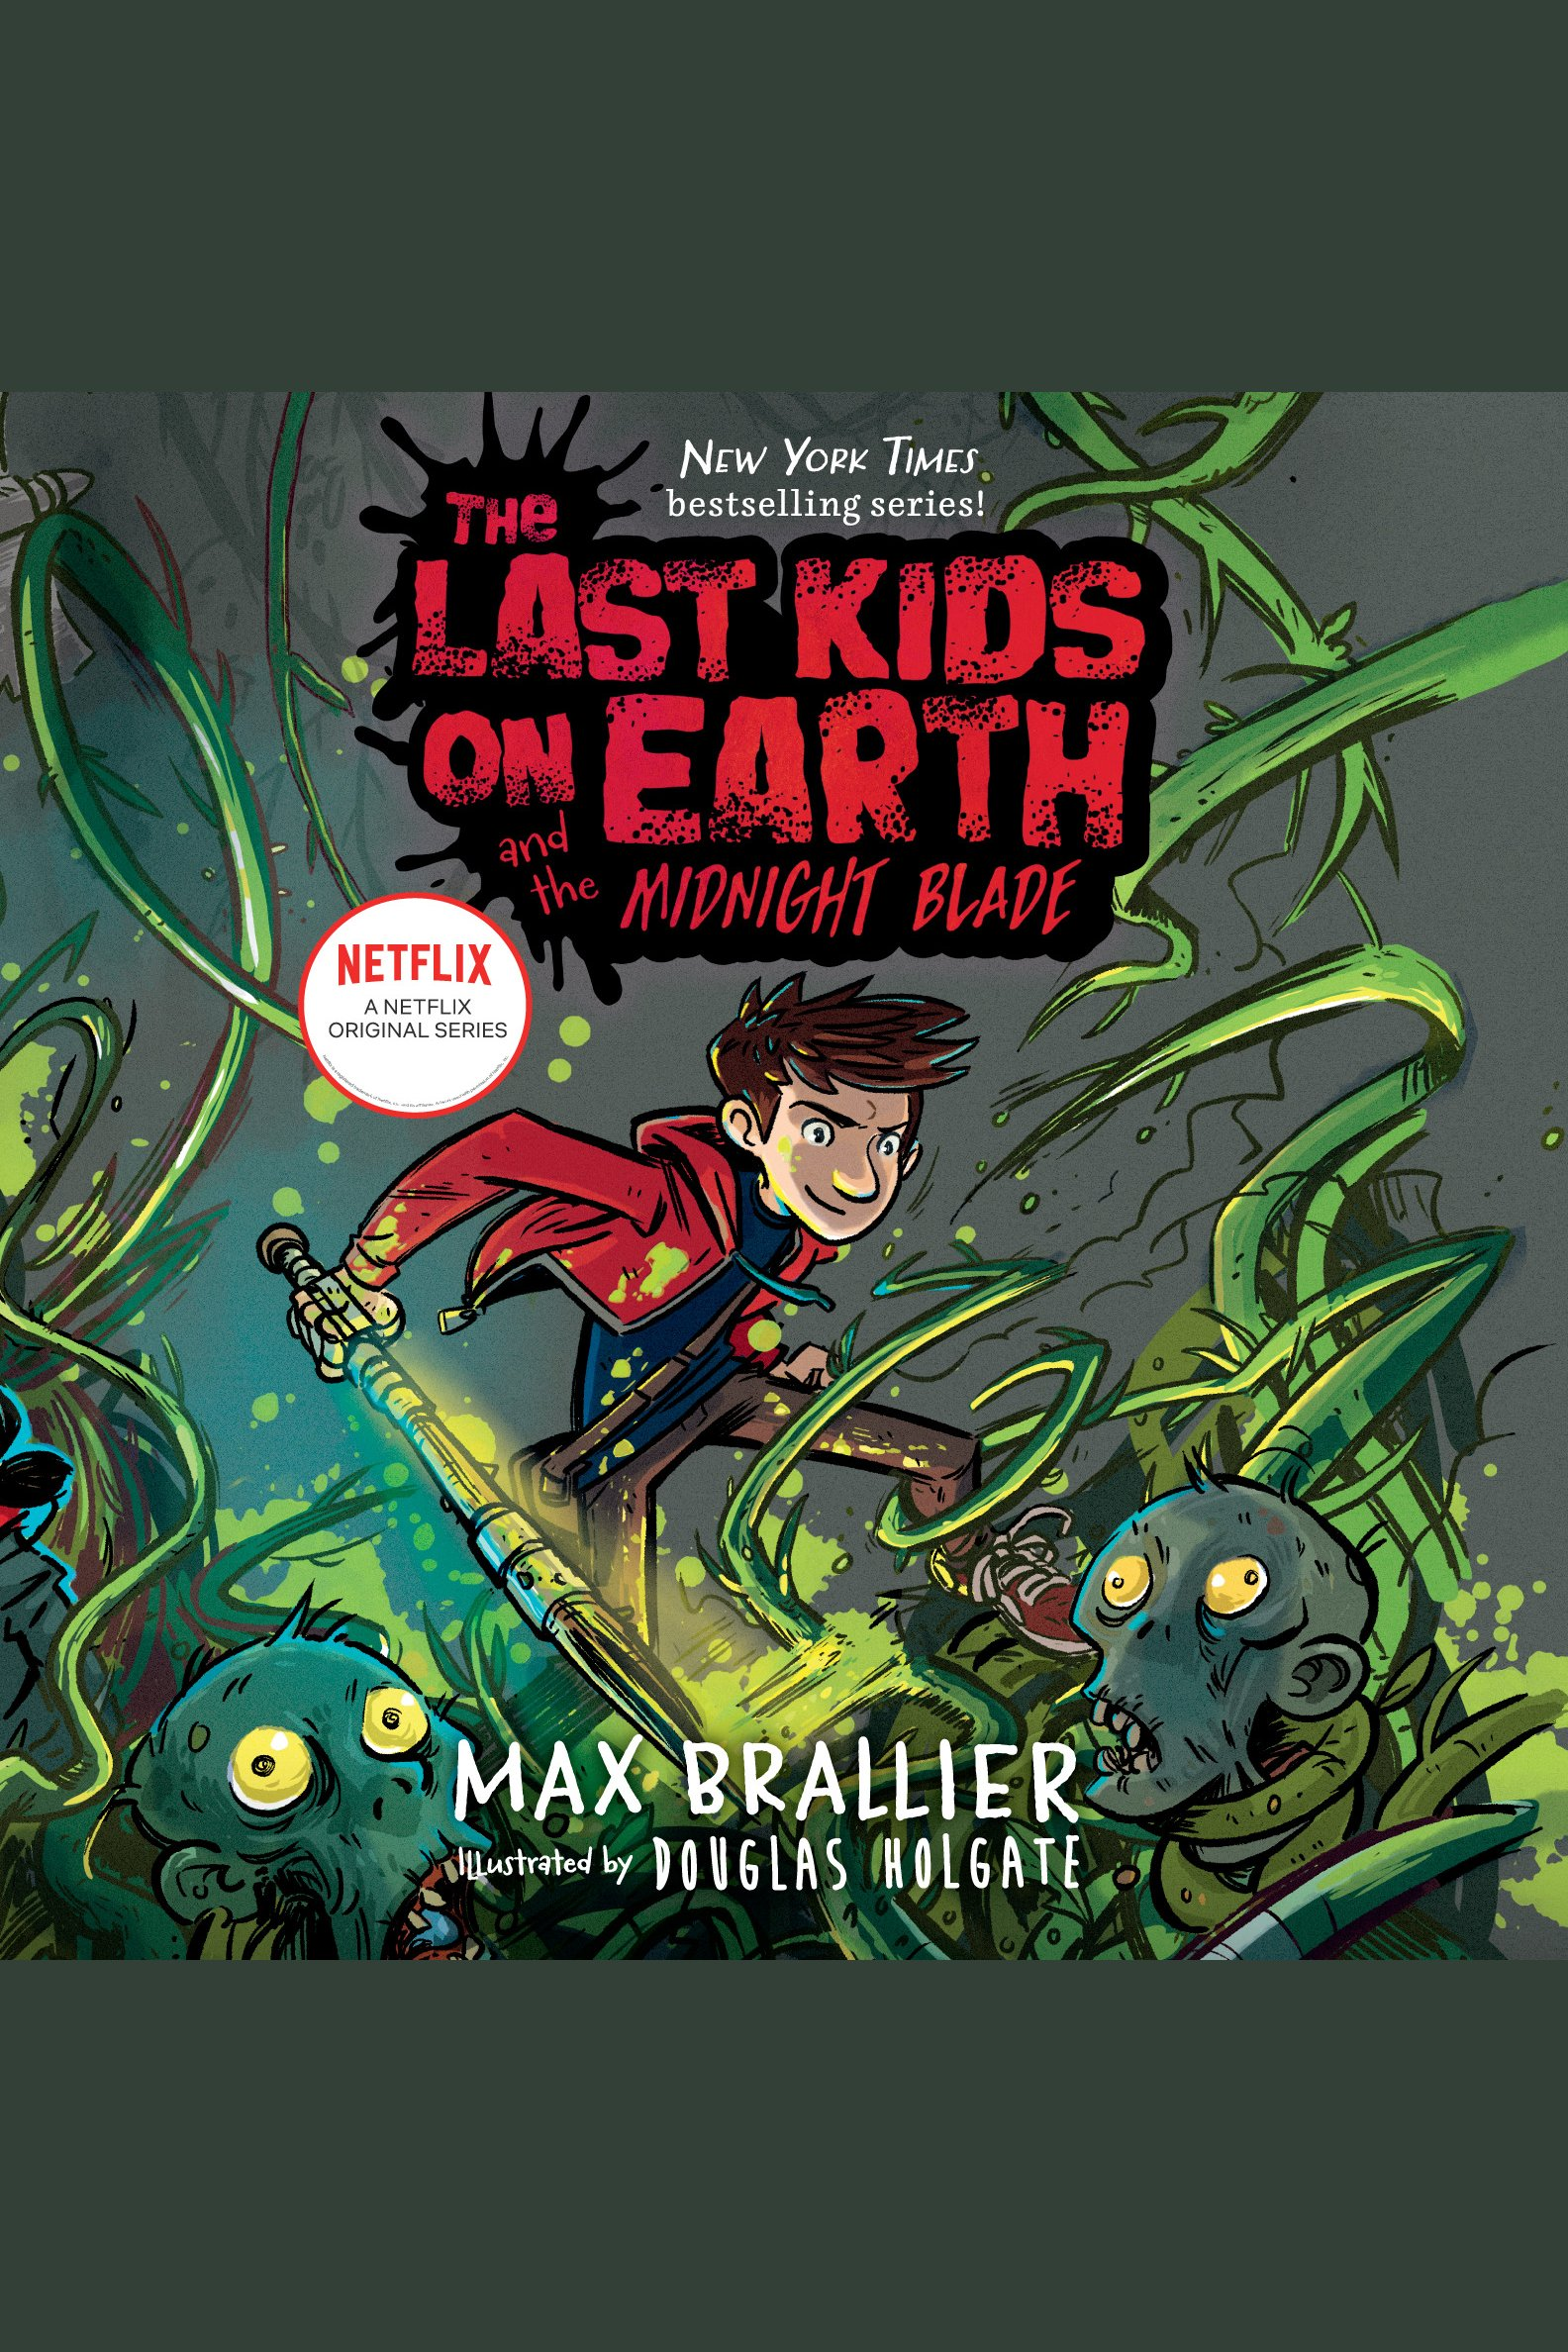 Last Kids on Earth and the Midnight Blade, The